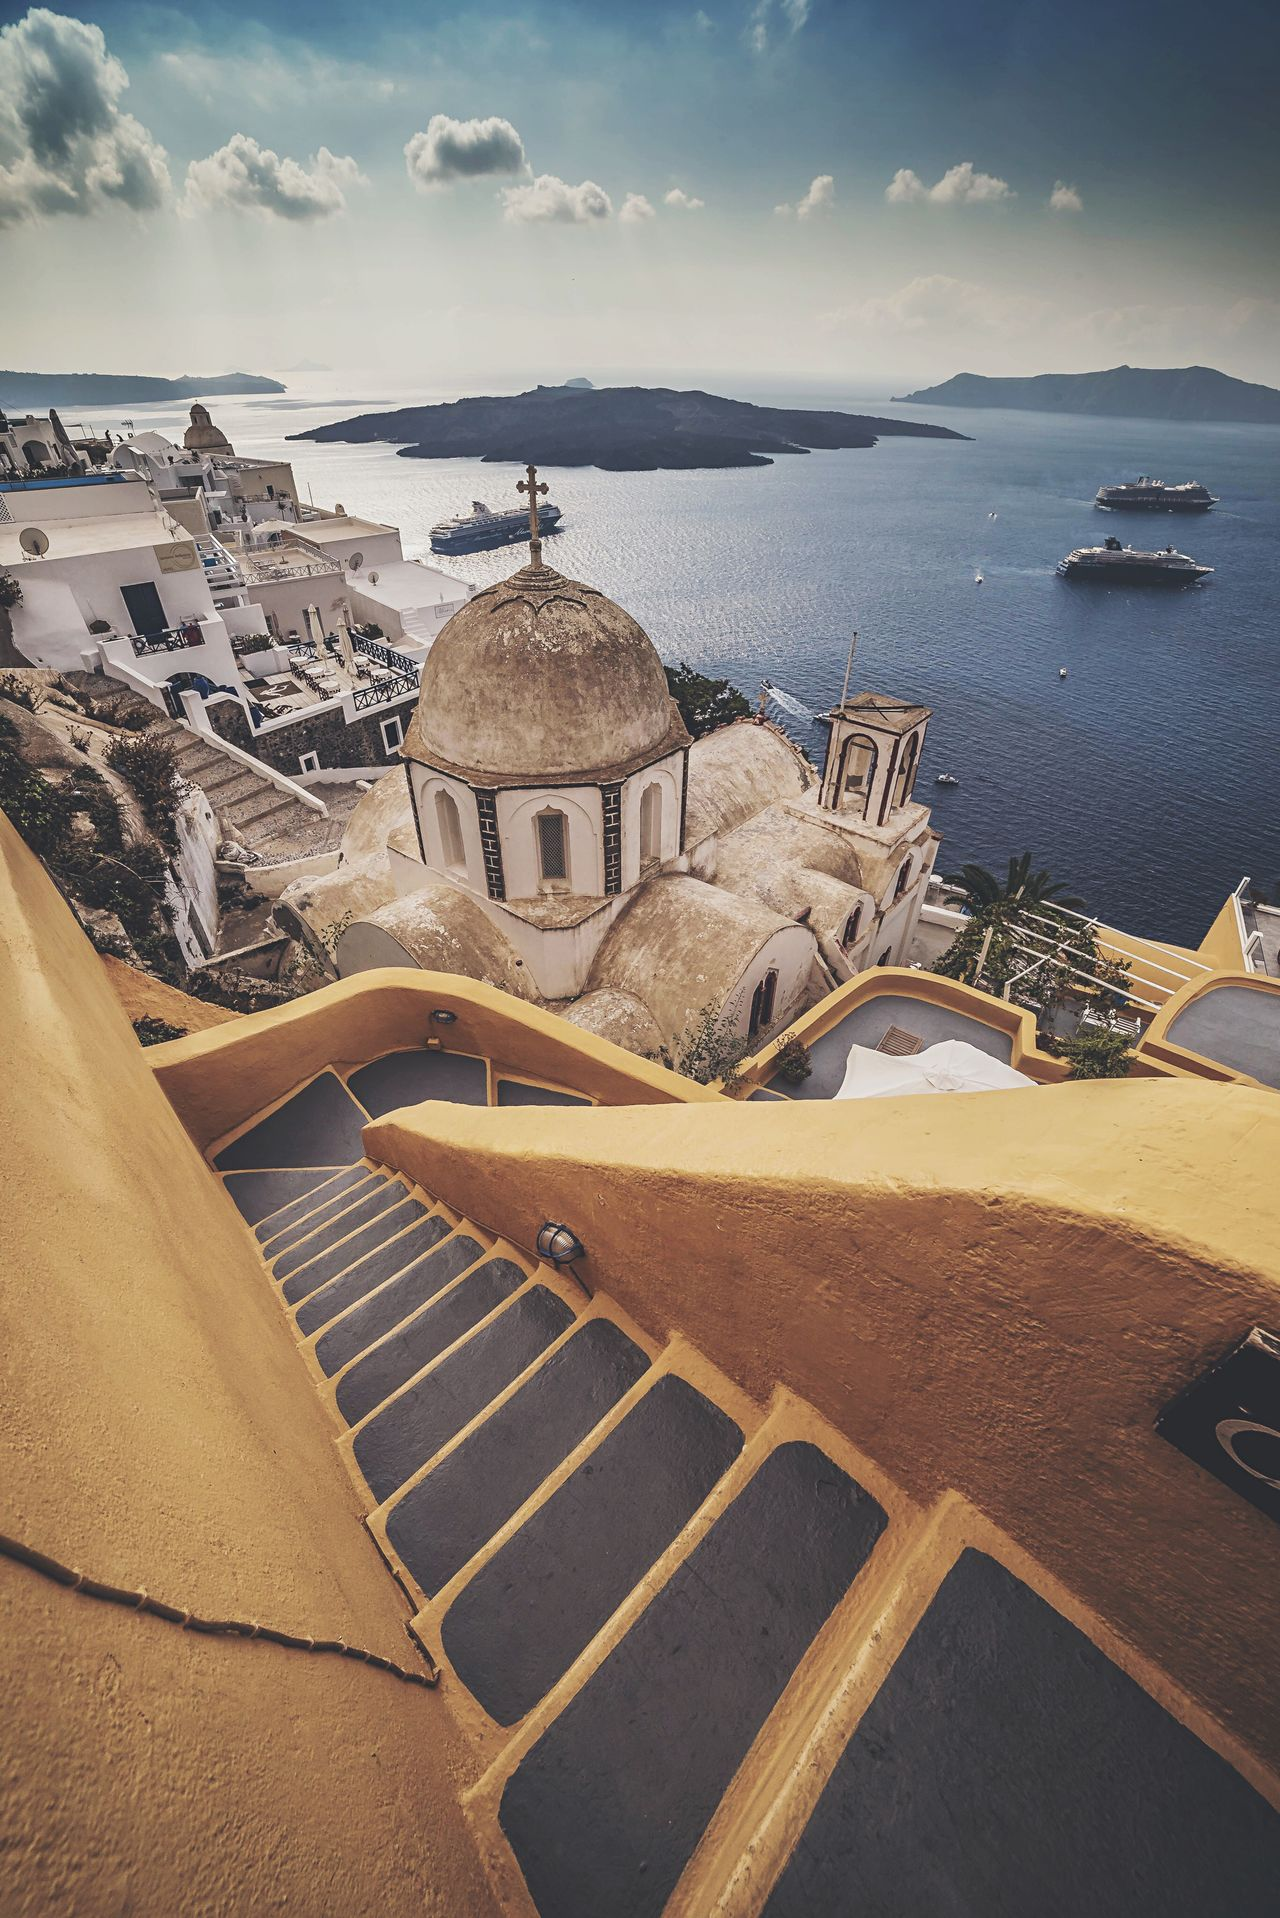 Steep Steps Thira(Fira) Santorini Santorini Sea Water High Angle View Sky Nature Travel Destinations Day No People Scenics Outdoors Religion History Horizon Over Water Beauty In Nature Dome Tranquility Sunlight Built Structure Beach Architecture The Great Outdoors - 2017 EyeEm Awards The Architect - 2017 EyeEm Awards The Street Photographer - 2017 EyeEm Awards